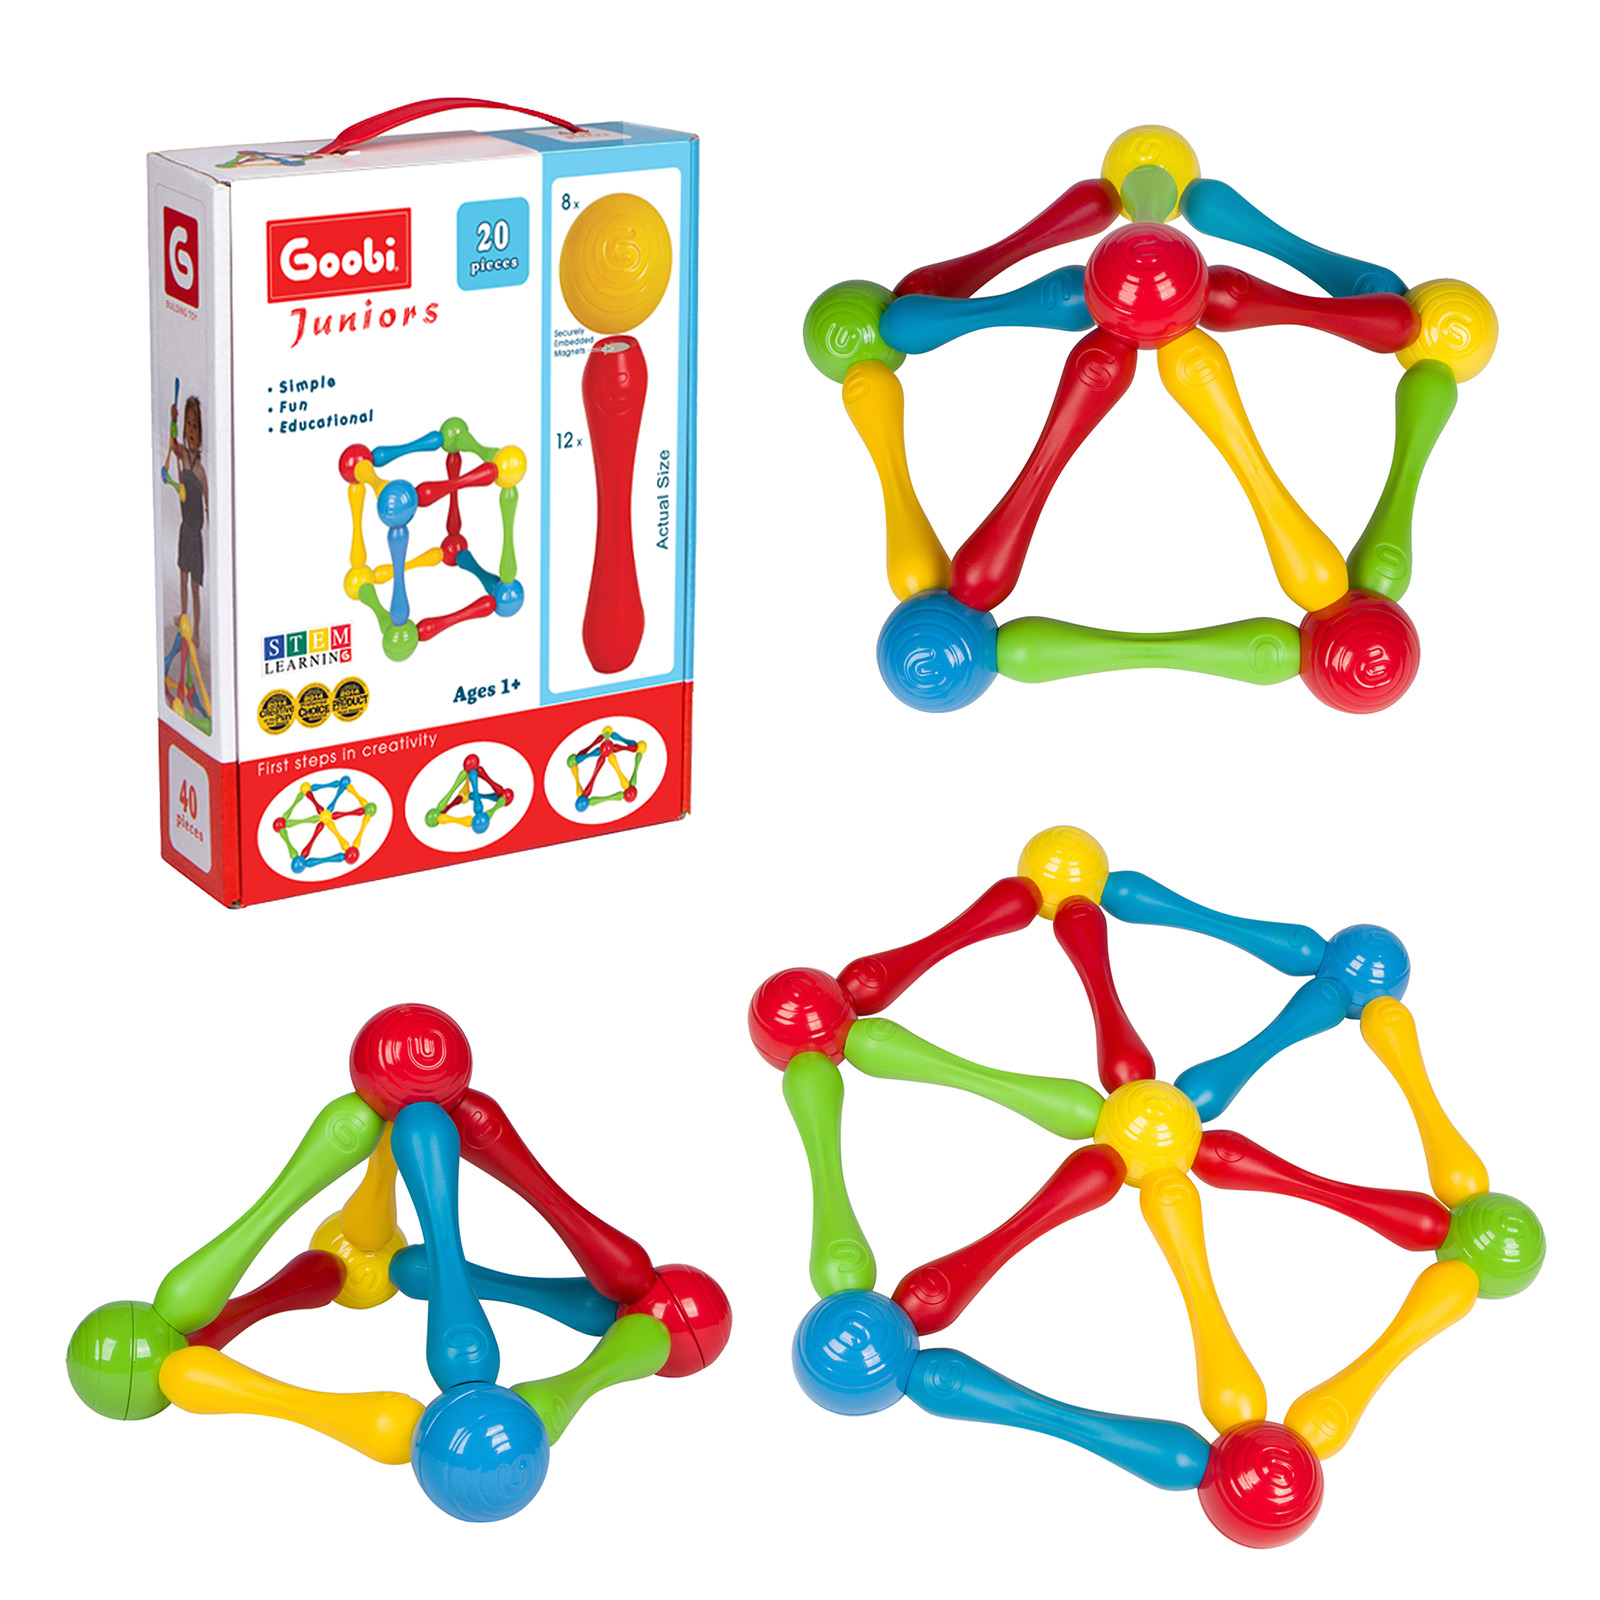 Goobi Juniors-20 for Ages 1+